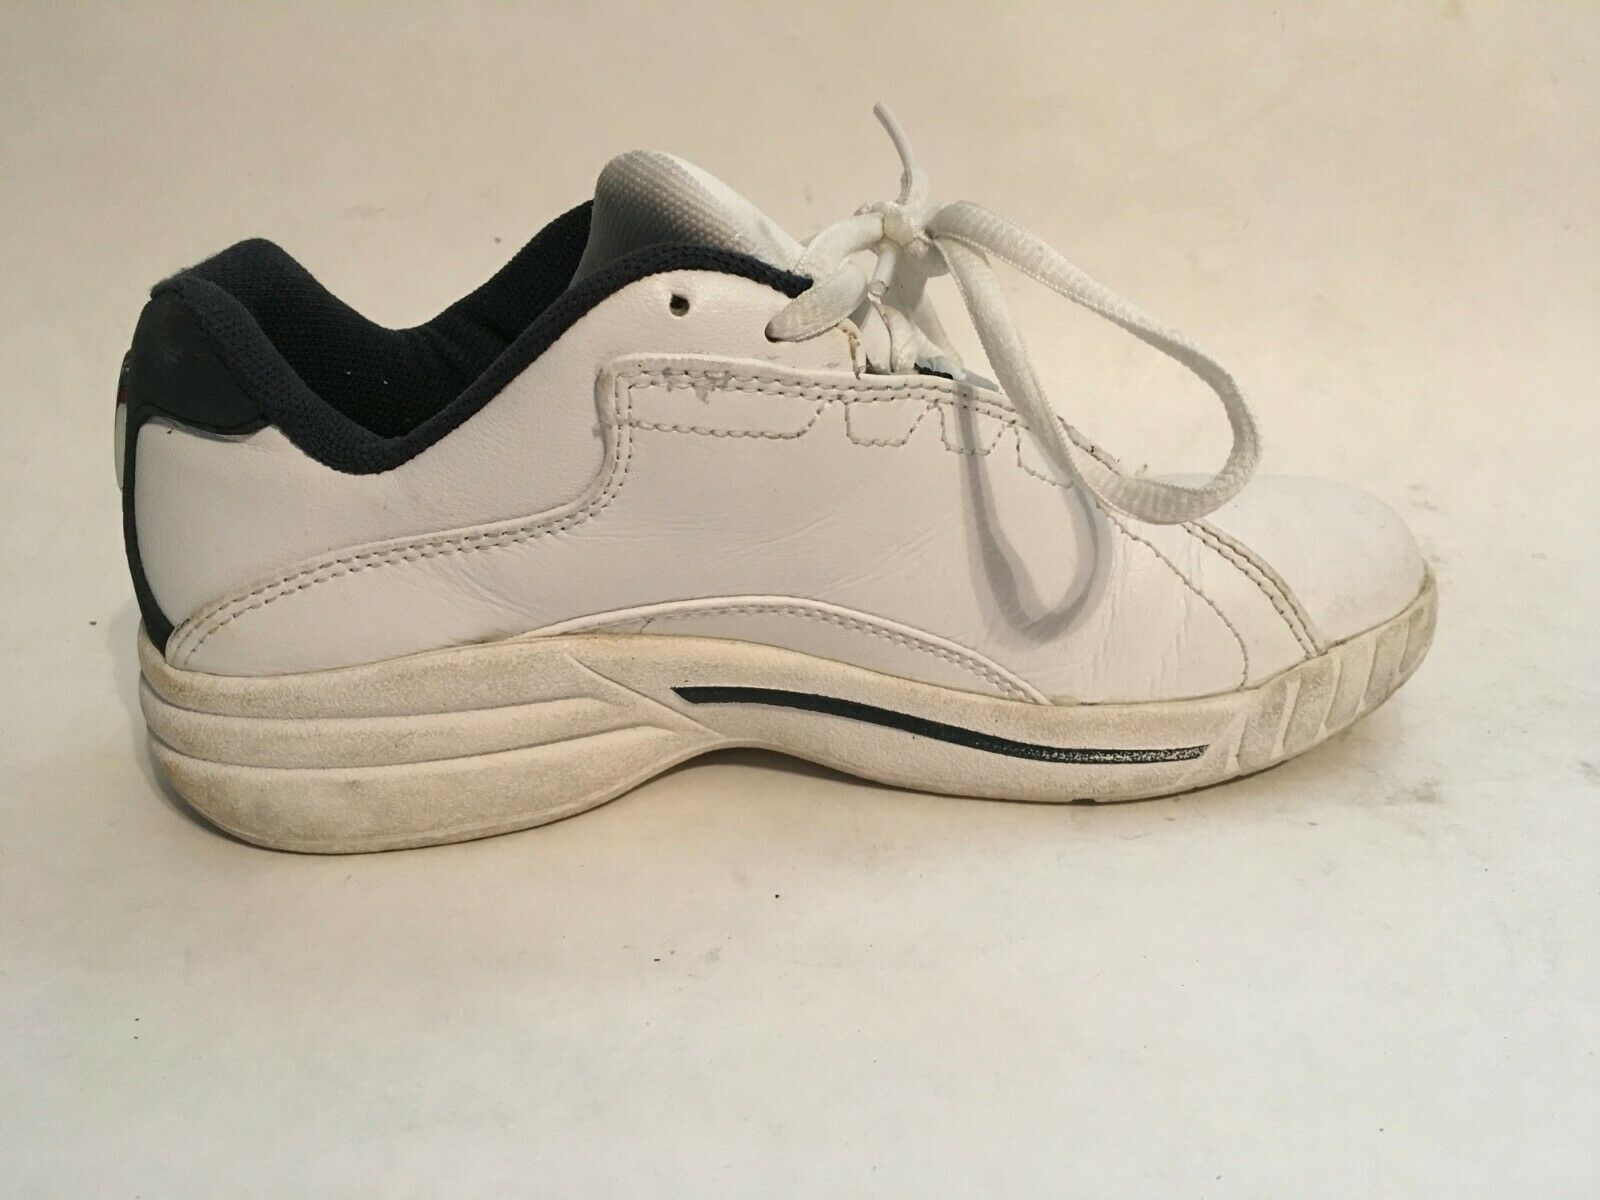 Converse All-Star Womens White Leather Athletic Running Walking Shoes sz 5 image 2